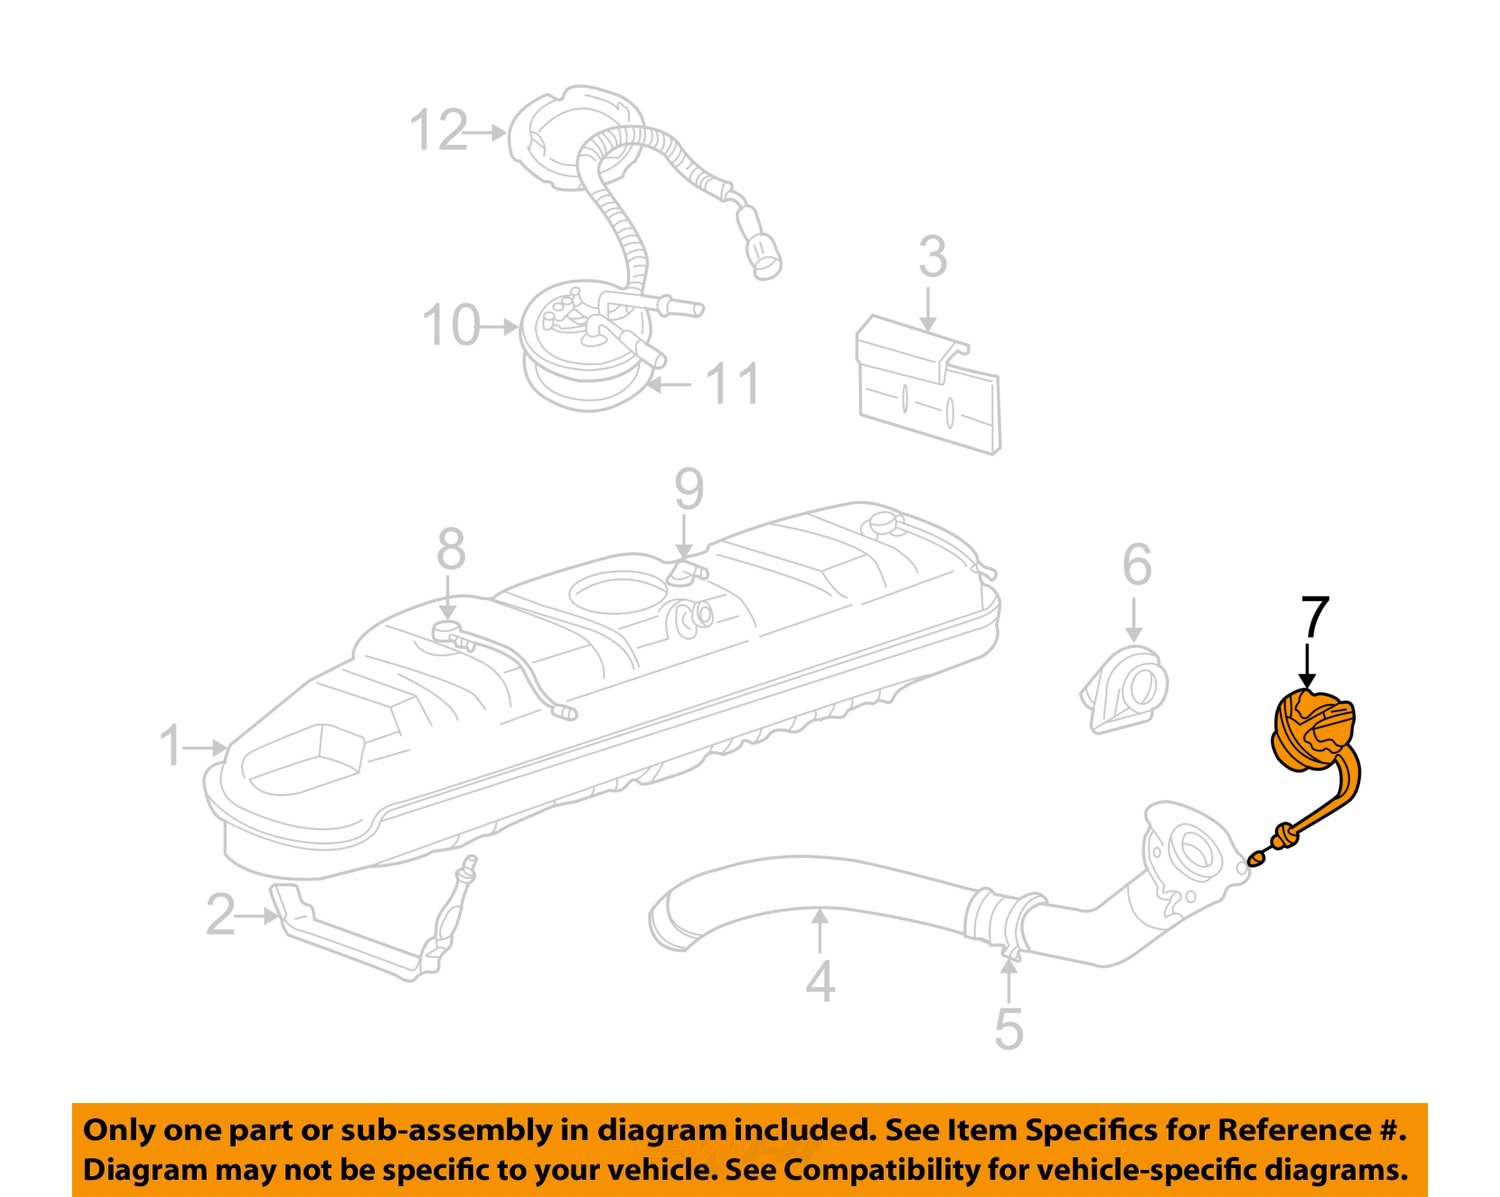 hight resolution of  7 on diagram only genuine oe factory original item